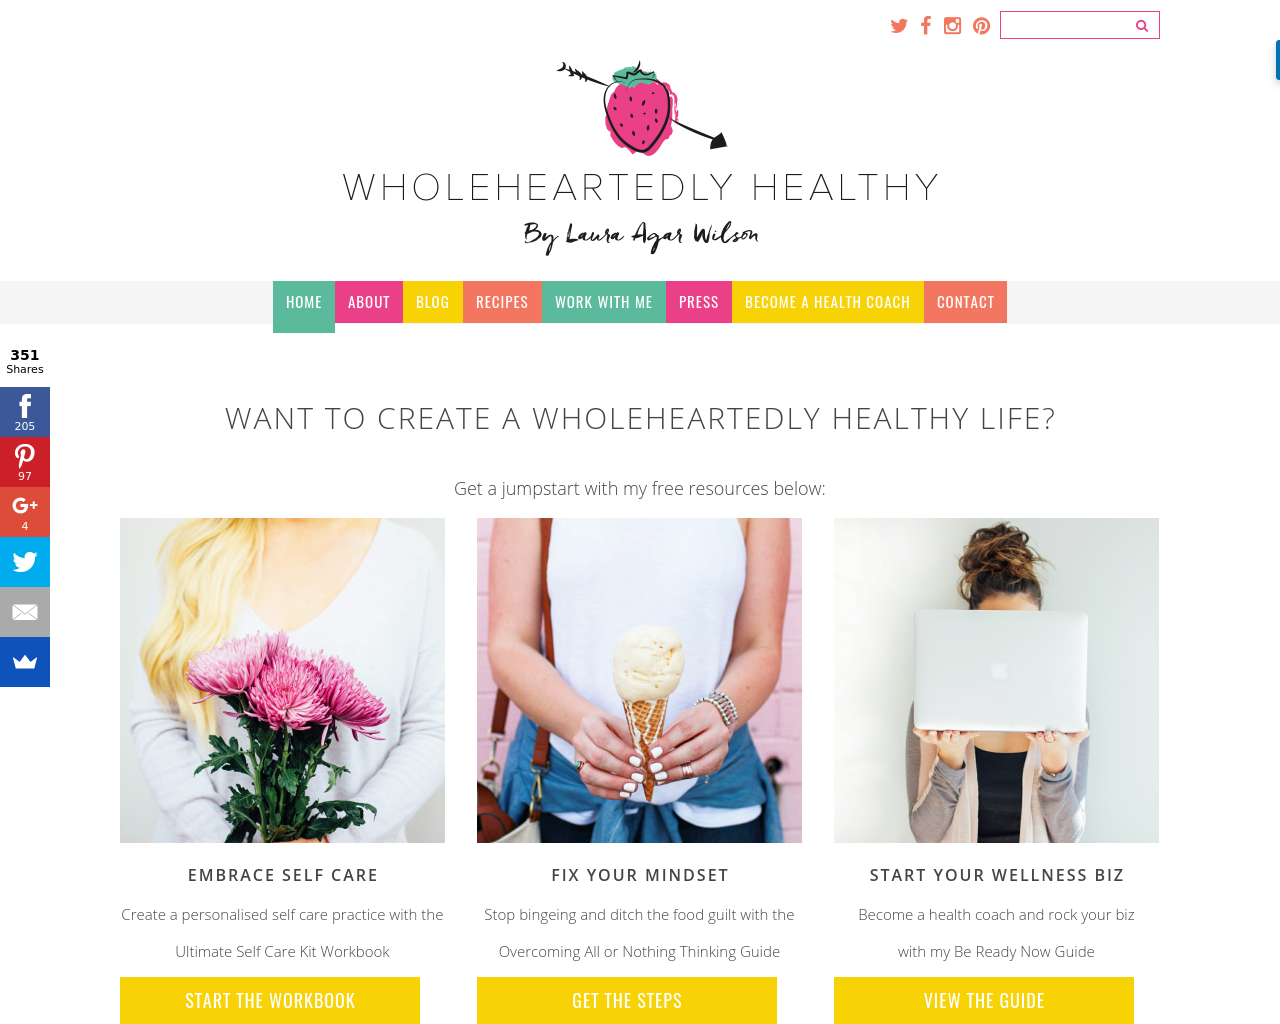 Whole-Heartedly-Healthy-Advertising-Reviews-Pricing